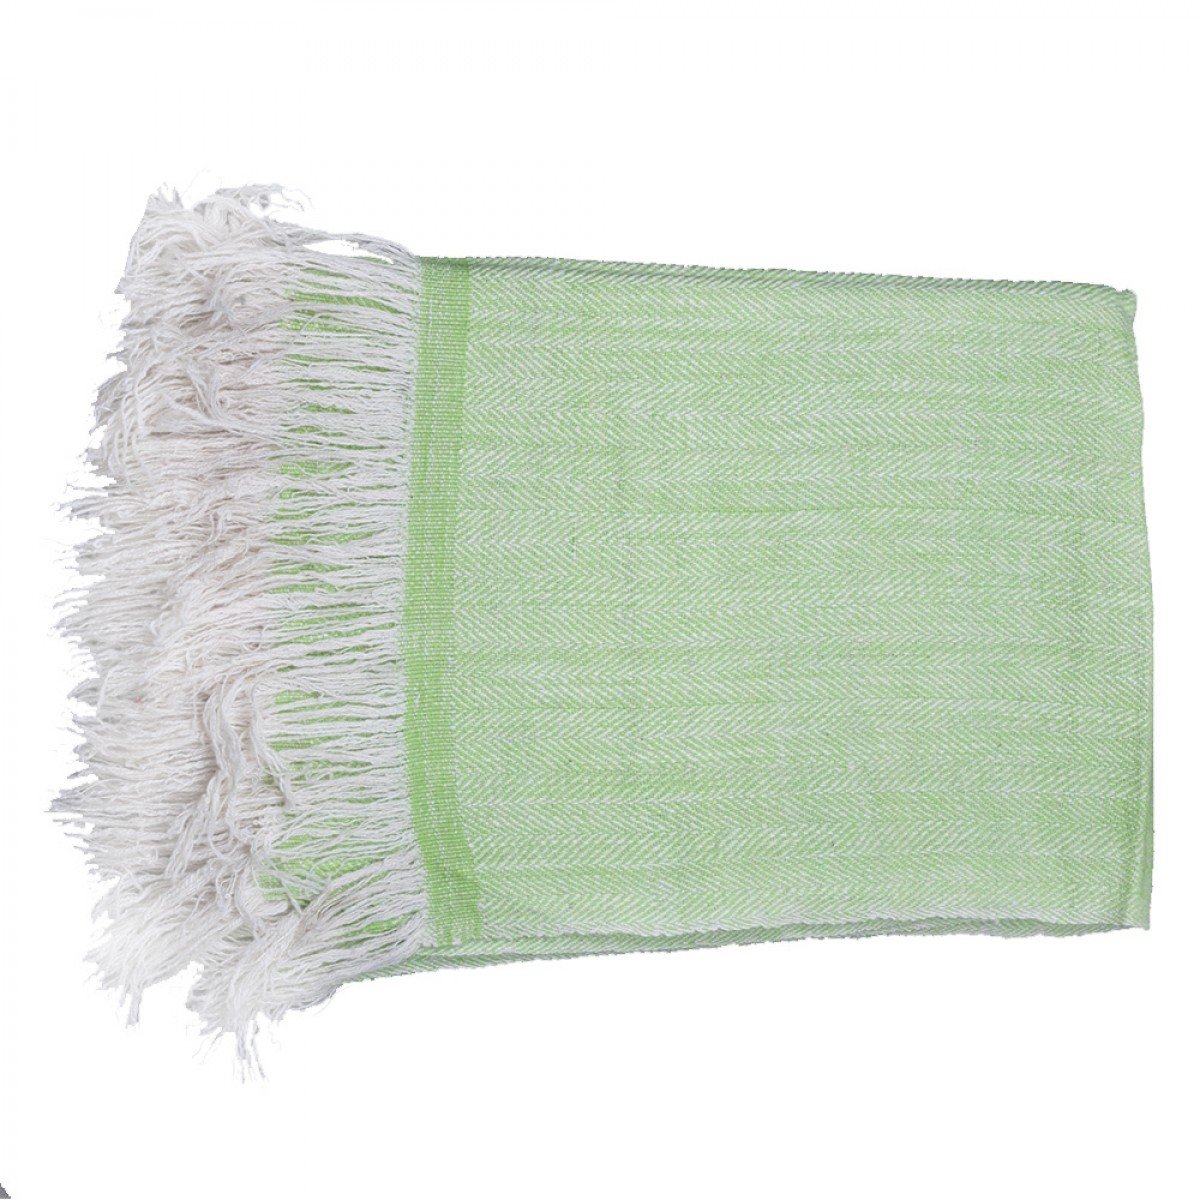 Apple Green Herringbone Weave Cashmere Blanket